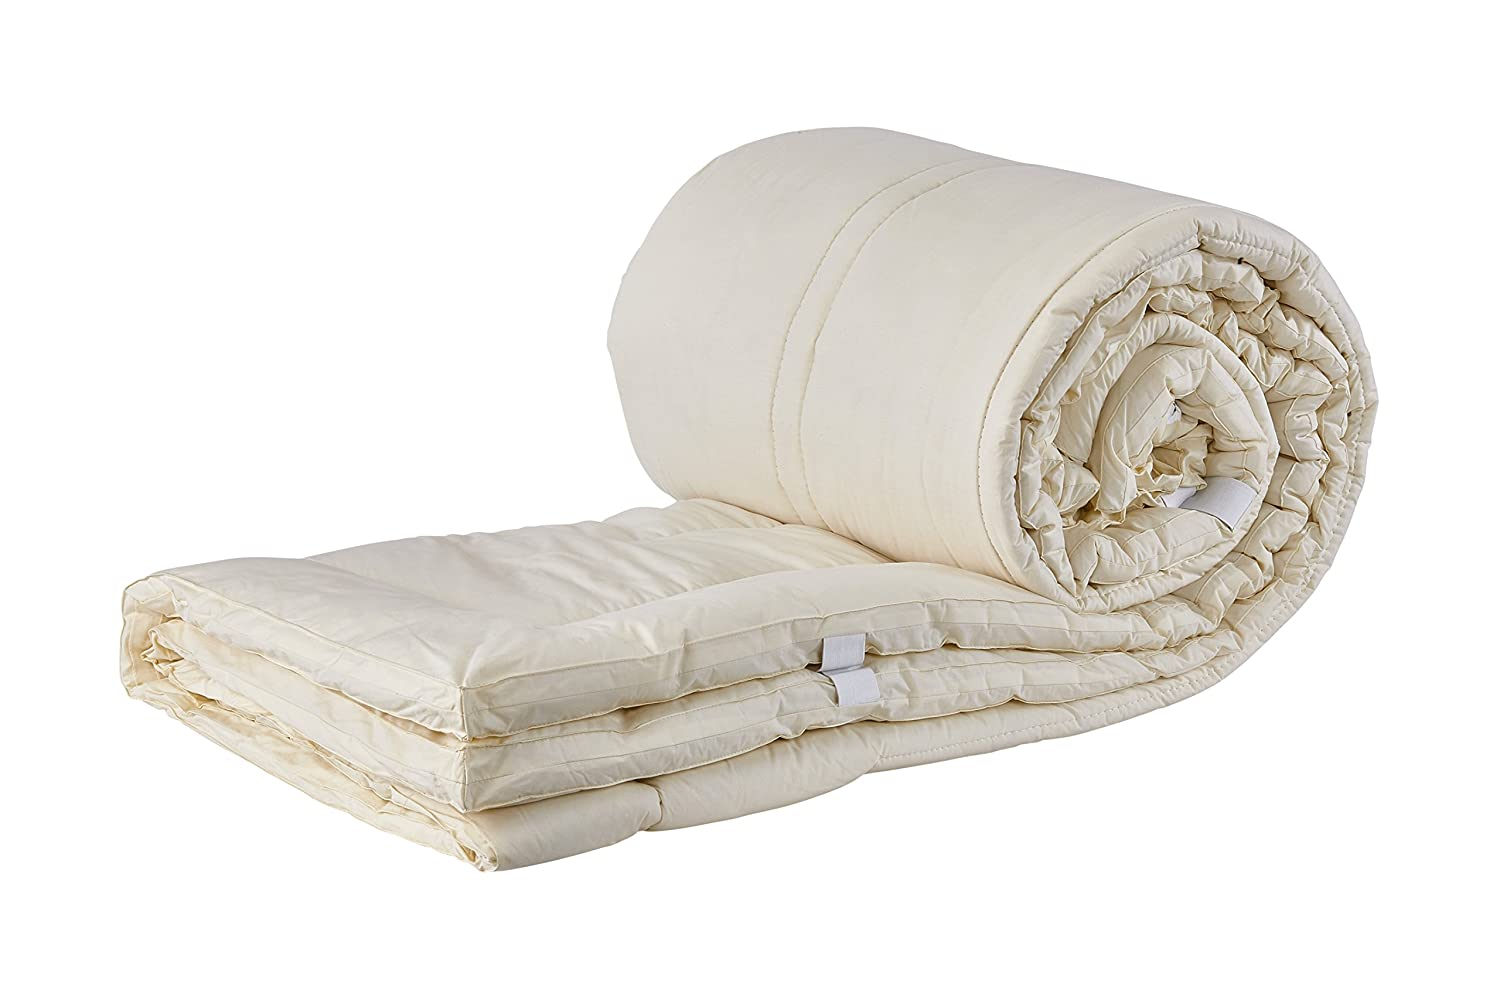 Sleep & Beyond 60 by 80-Inch Washable Wool Mattress Pad, Queen, Natural